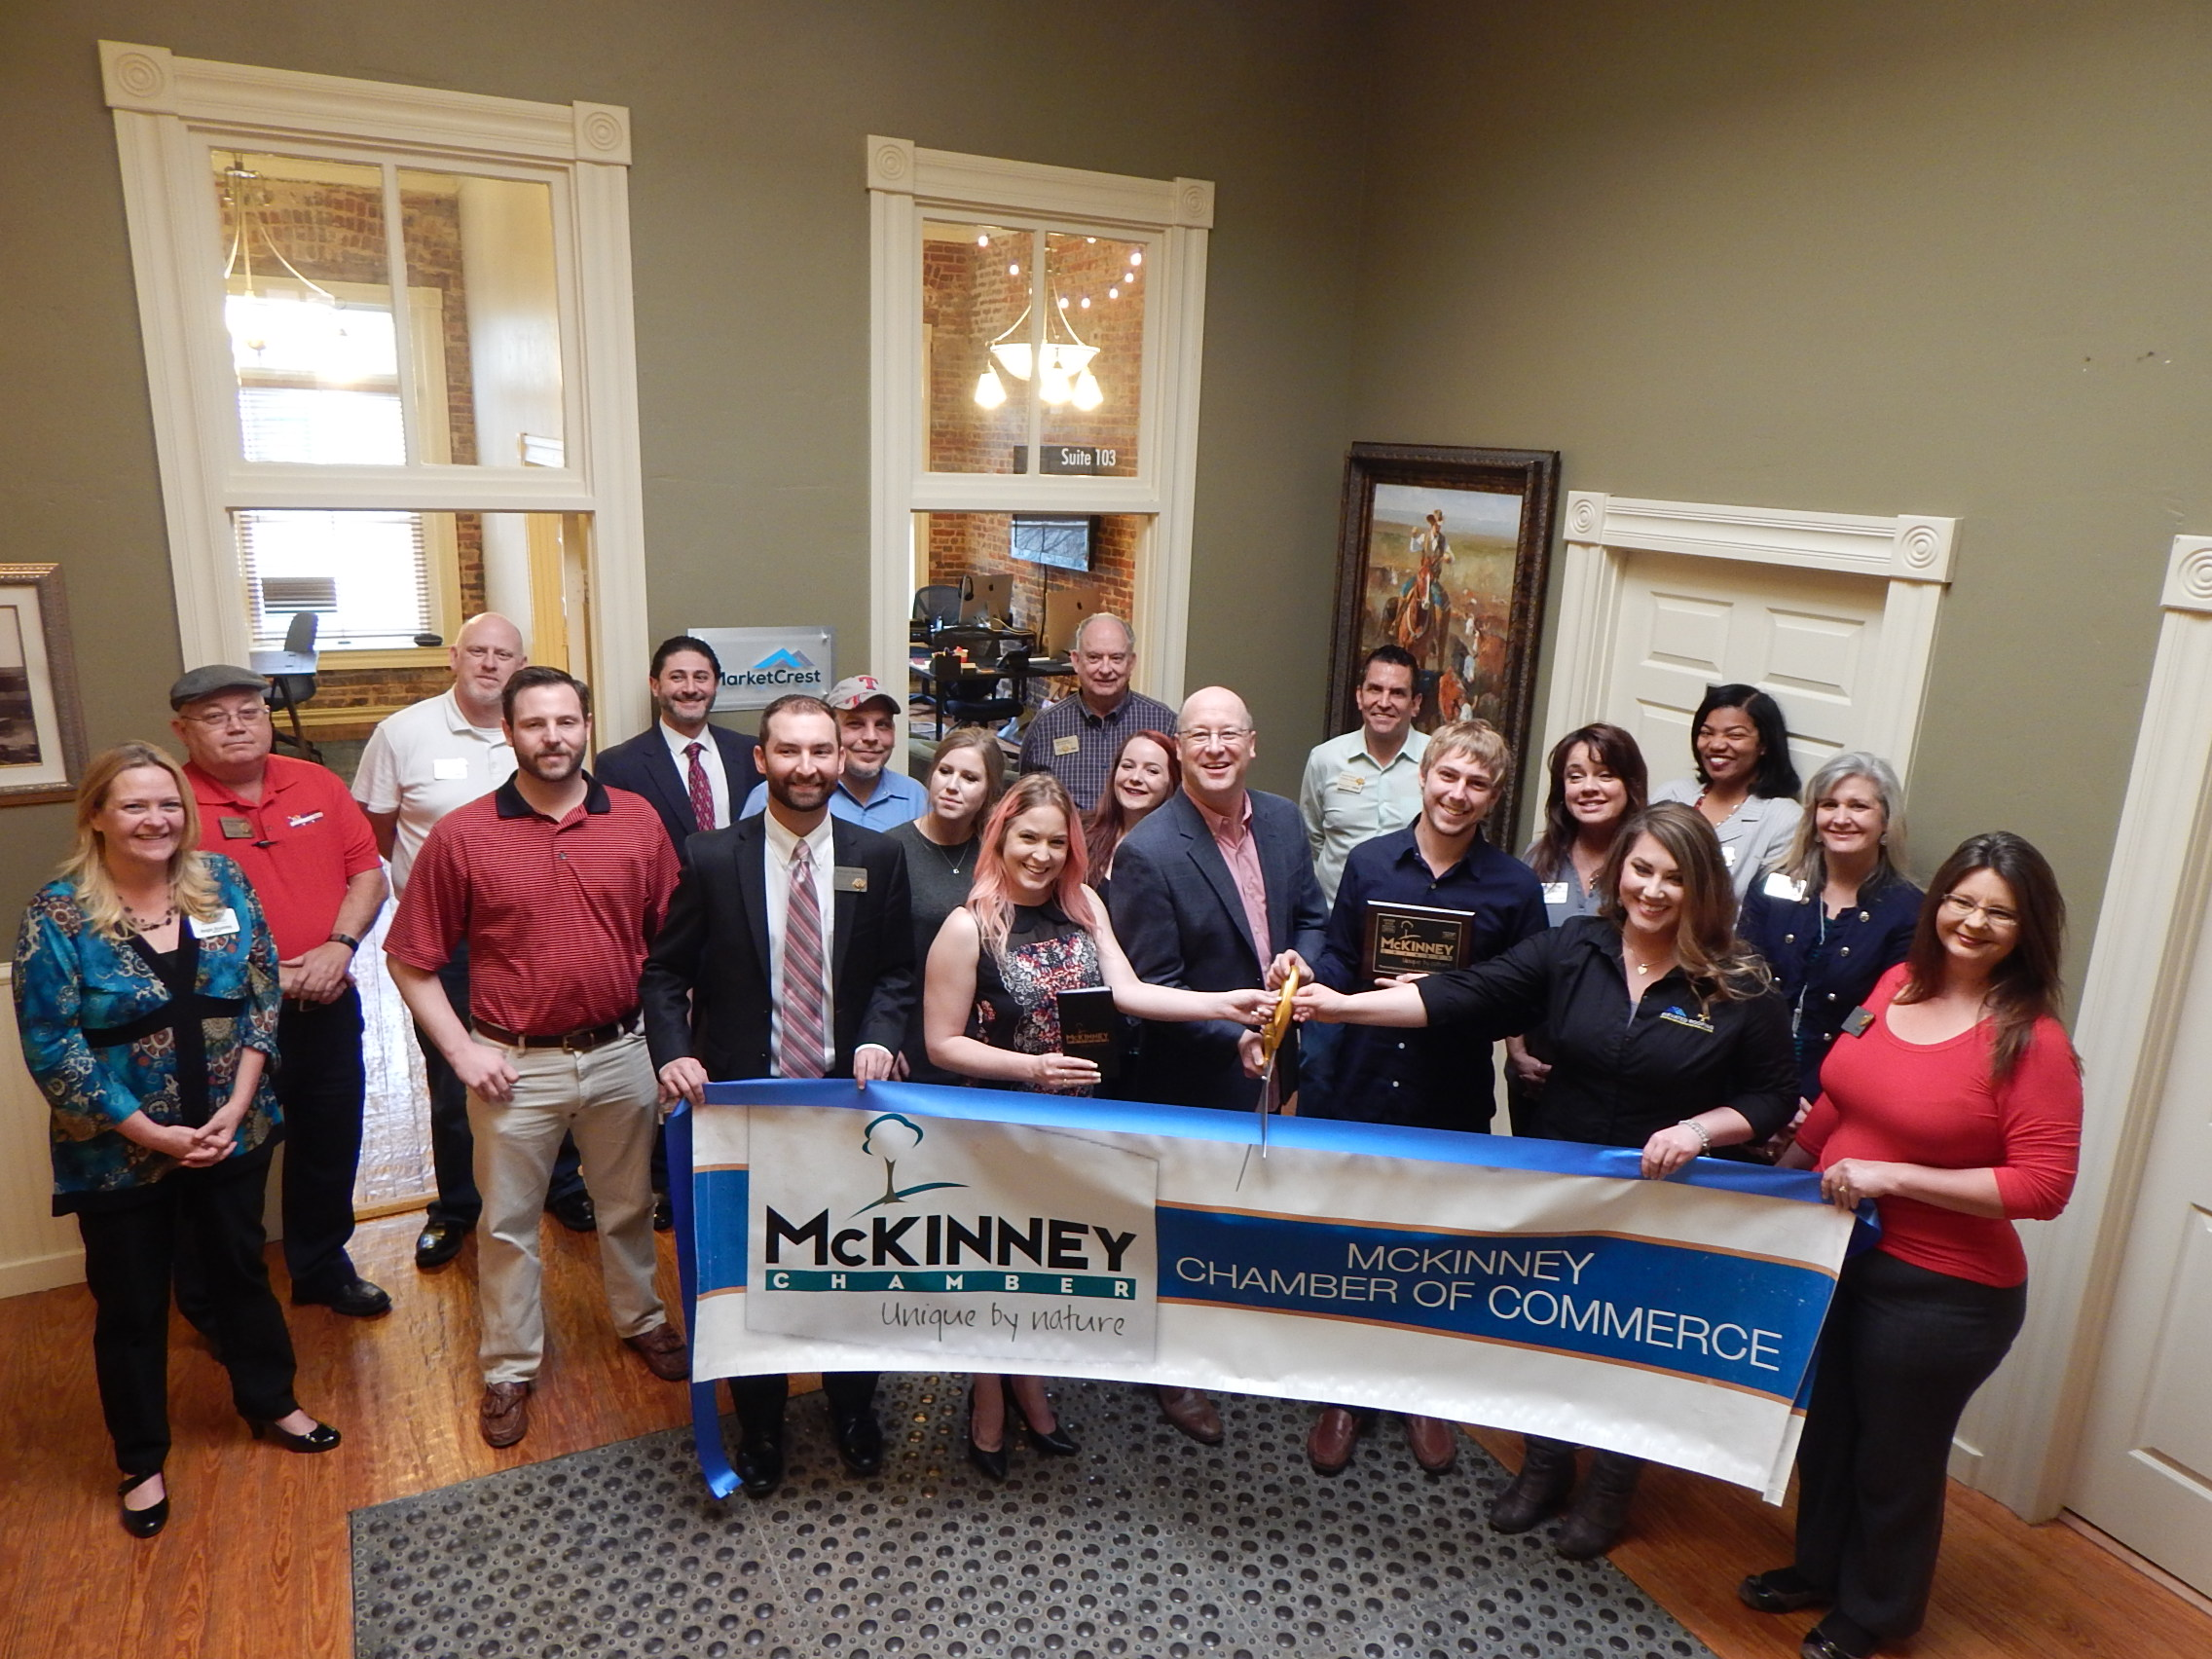 MarketCrest Joins McKinney Chamber